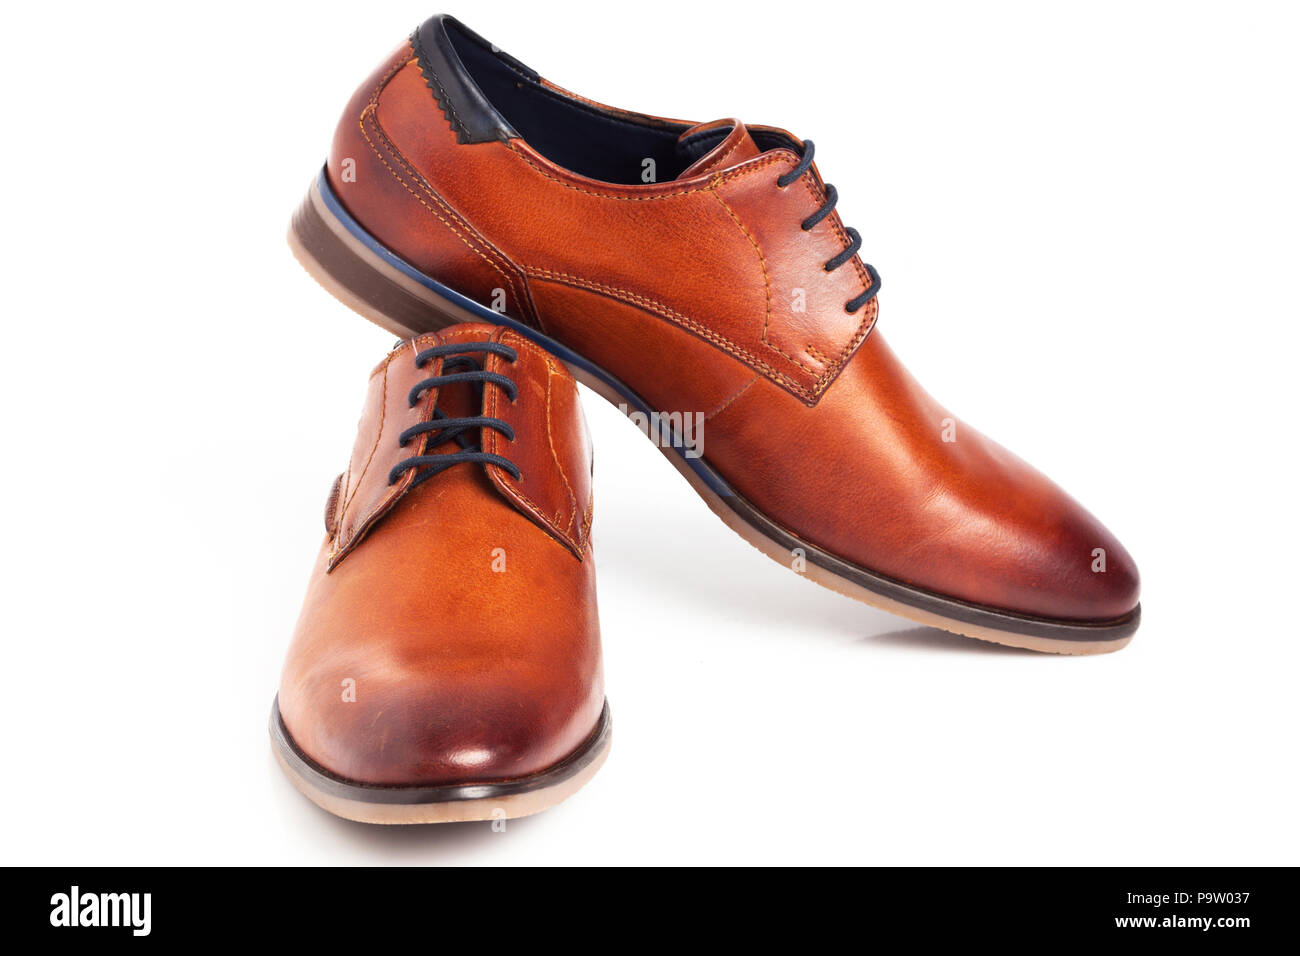 d363b205 Brown Oxford shoes isolated on white background. - Stock Image